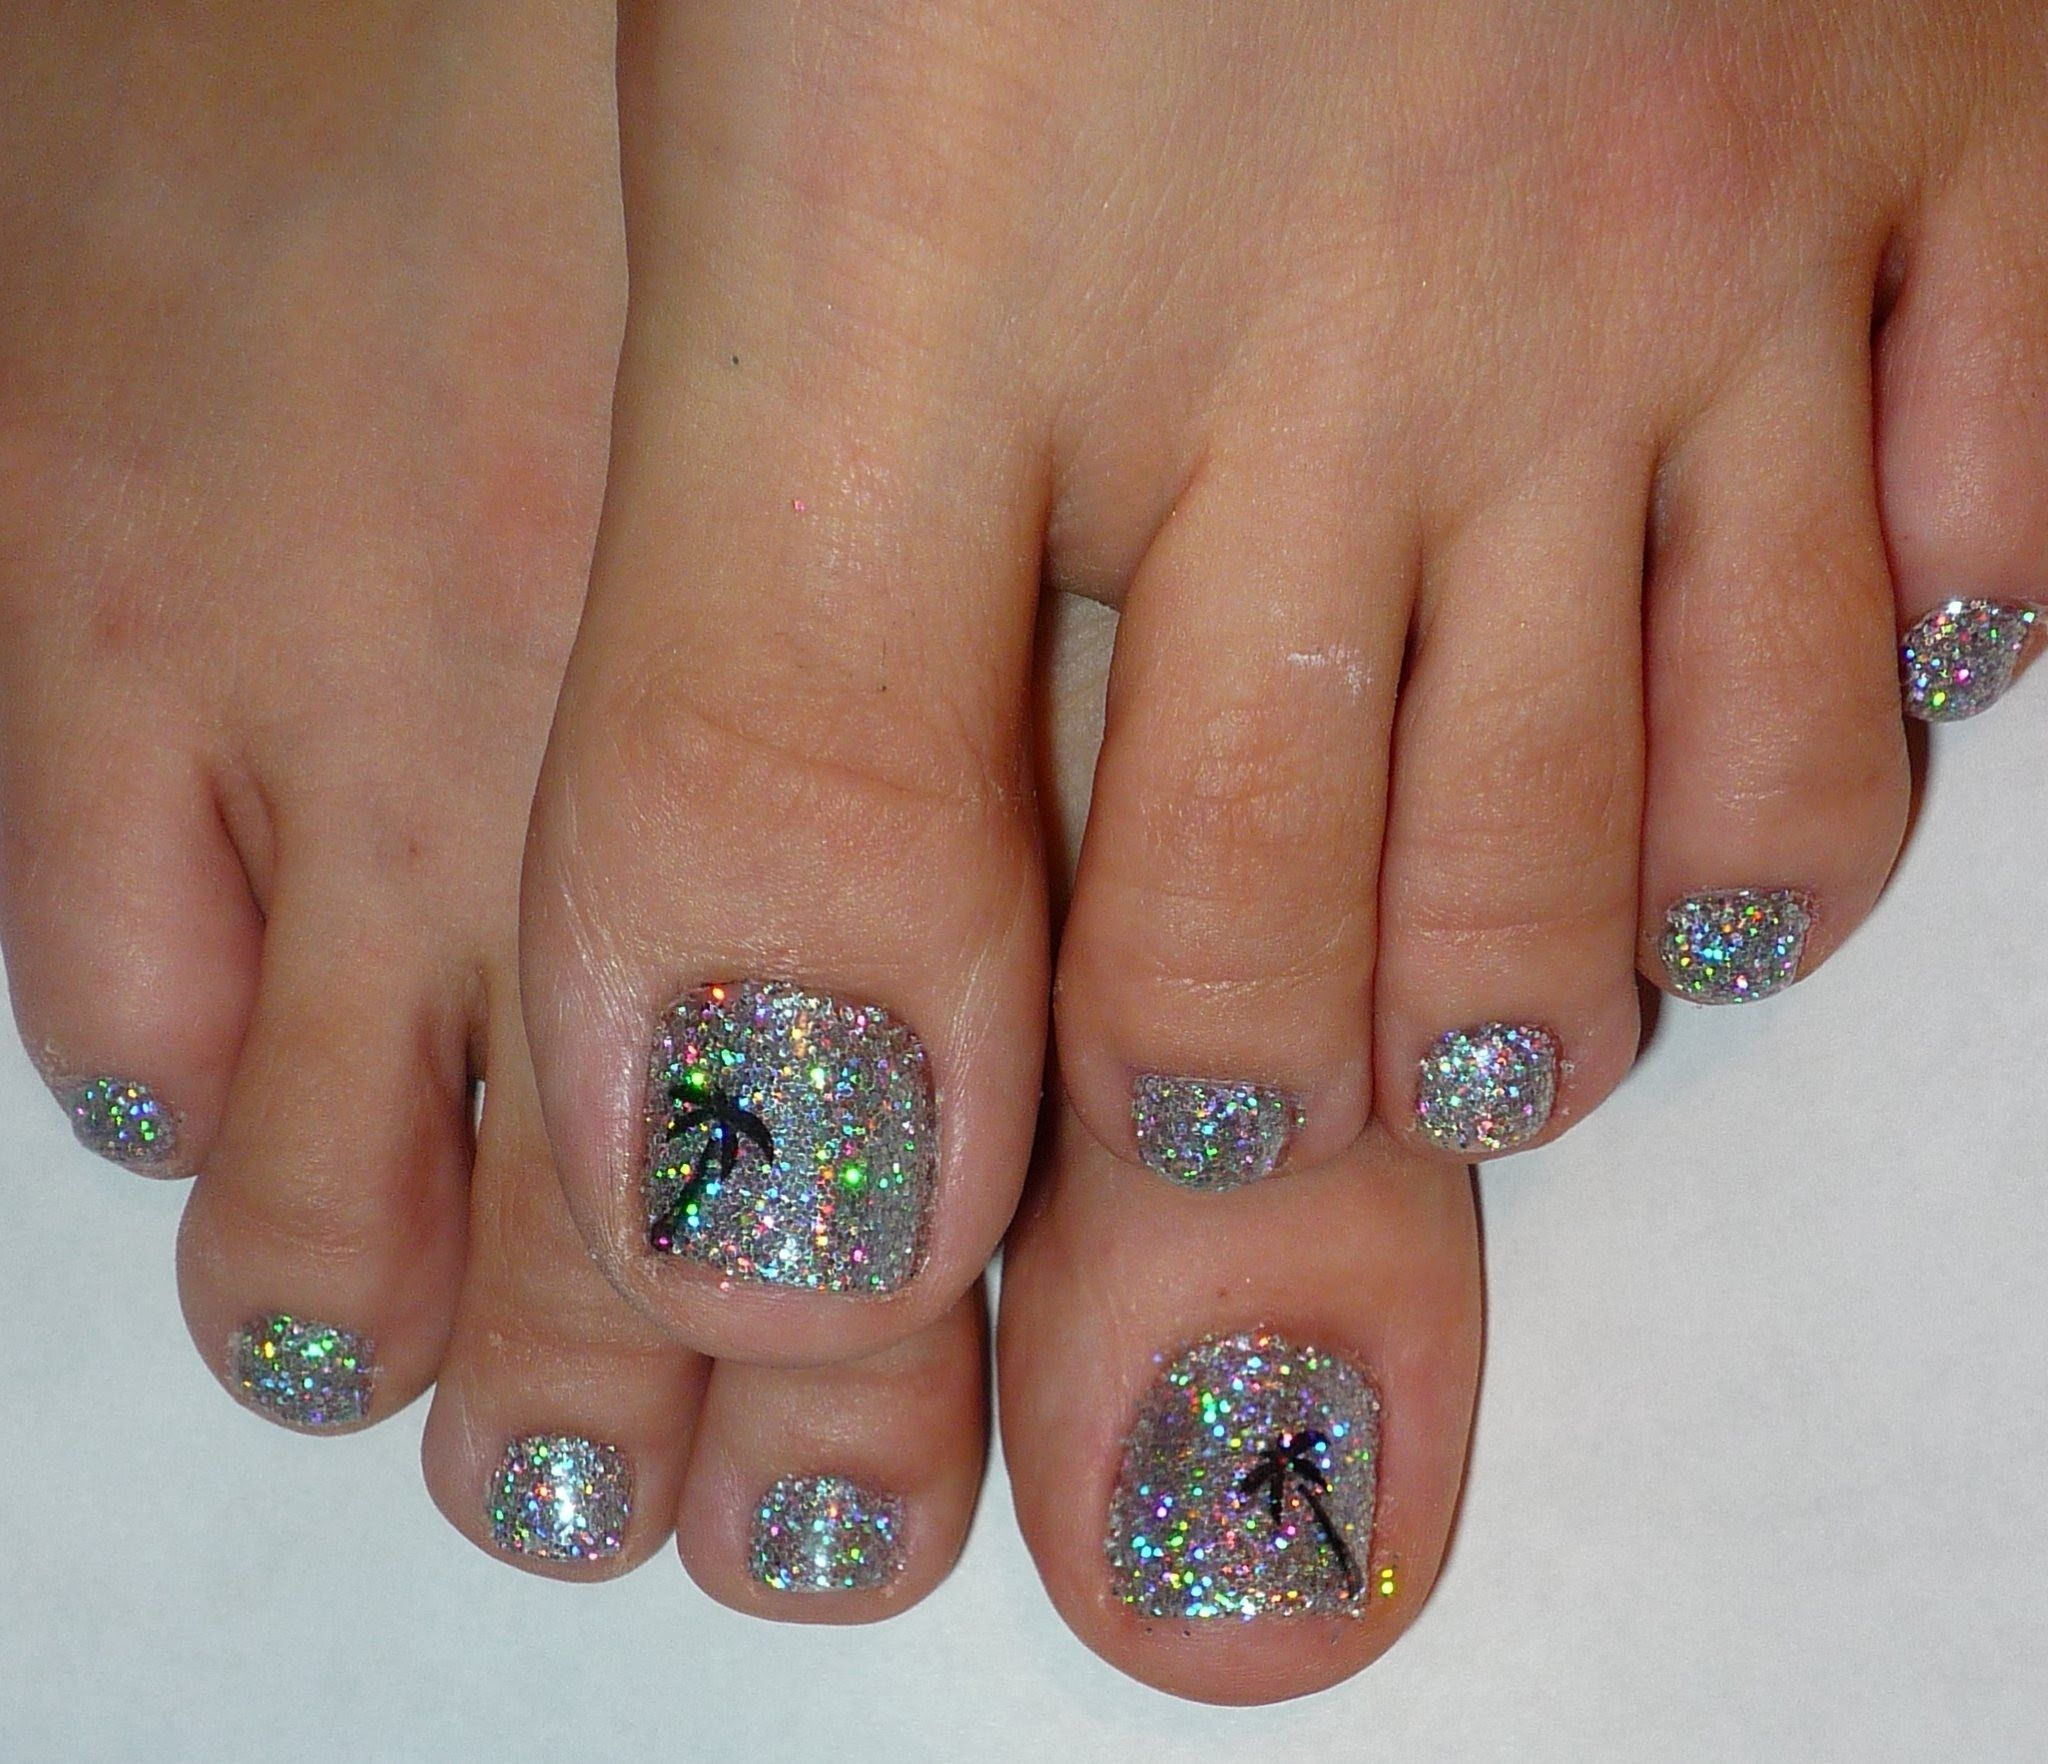 "Rock Star Toe Nails #2 ""Palm Tree & Holographic Glitter ..."